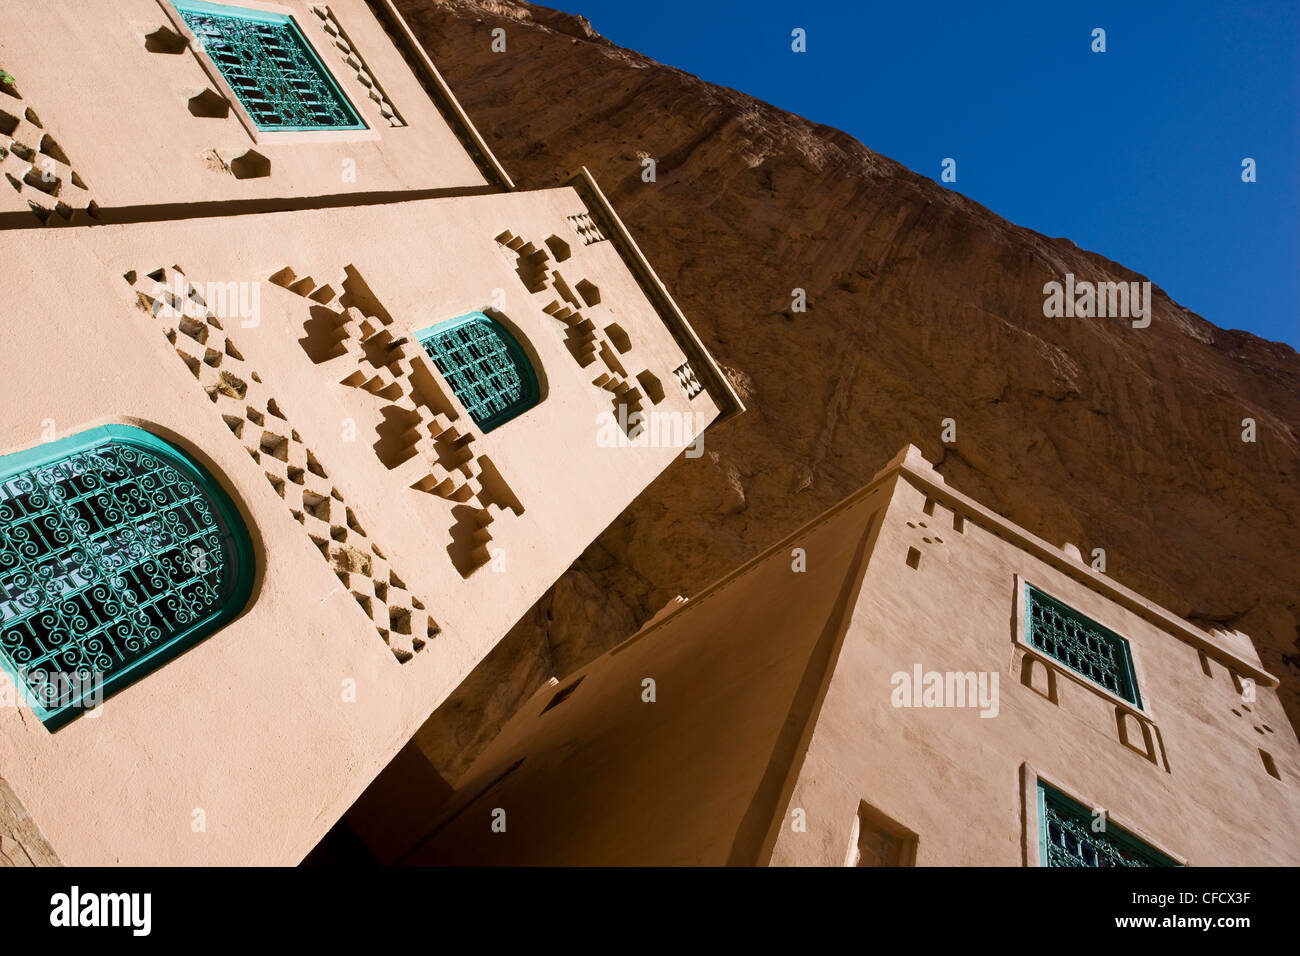 Walls of the Hotel Jasmina against the towering walls of the Todra Gorge near Tinerhir, Morocco, North Africa, Africa - Stock Image